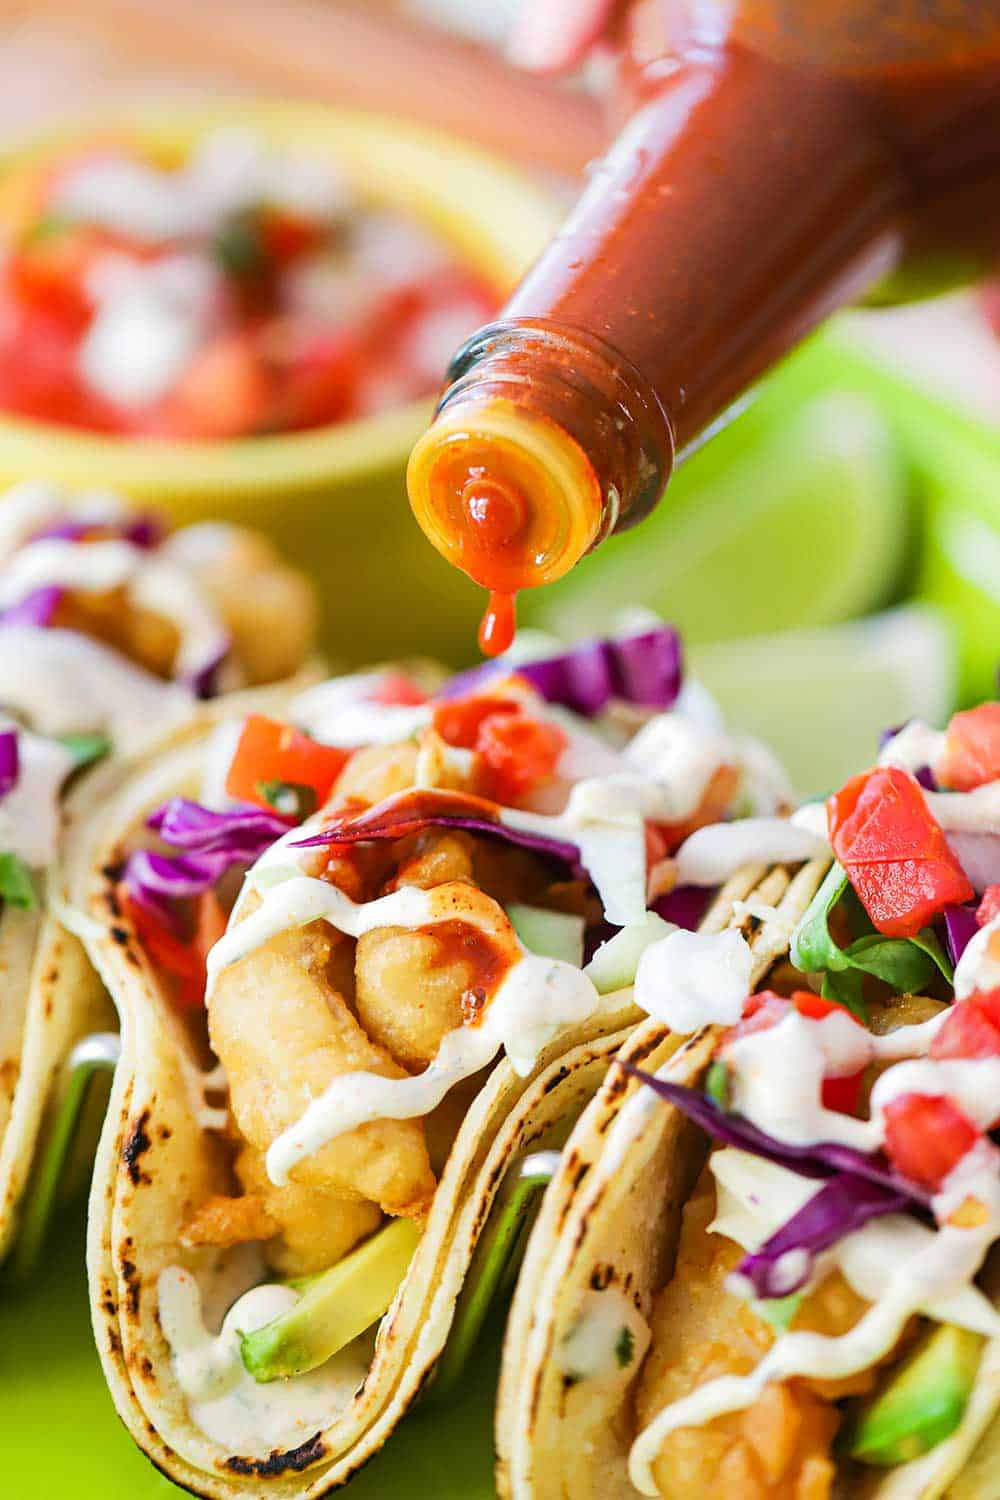 A close up view of a bottle of hot sauce drizzling sauce over Baja fish tacos.